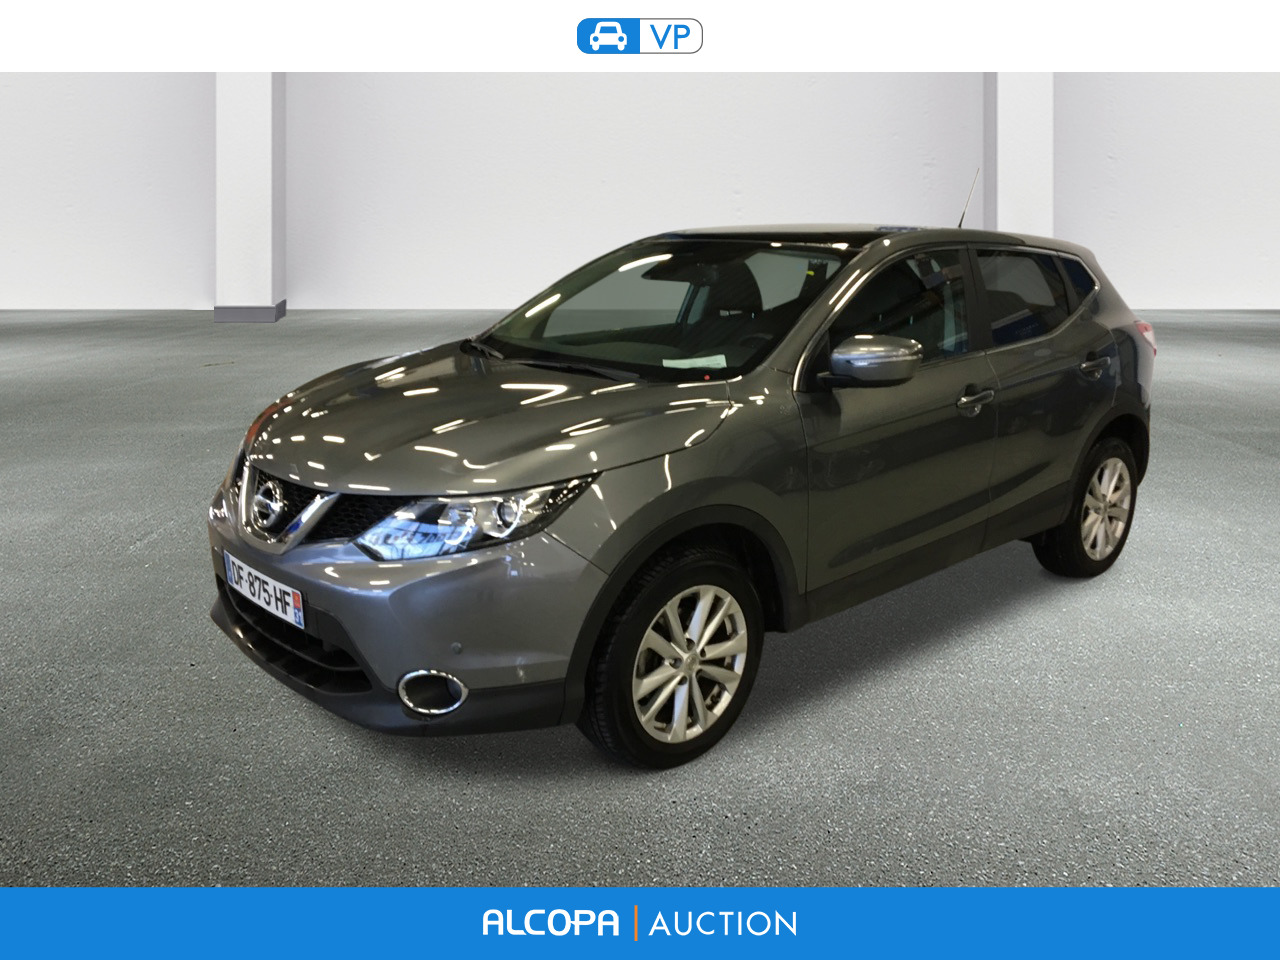 nissan qashqai qashqai 1 5 dci 110ch connect edition rennes alcopa auction. Black Bedroom Furniture Sets. Home Design Ideas